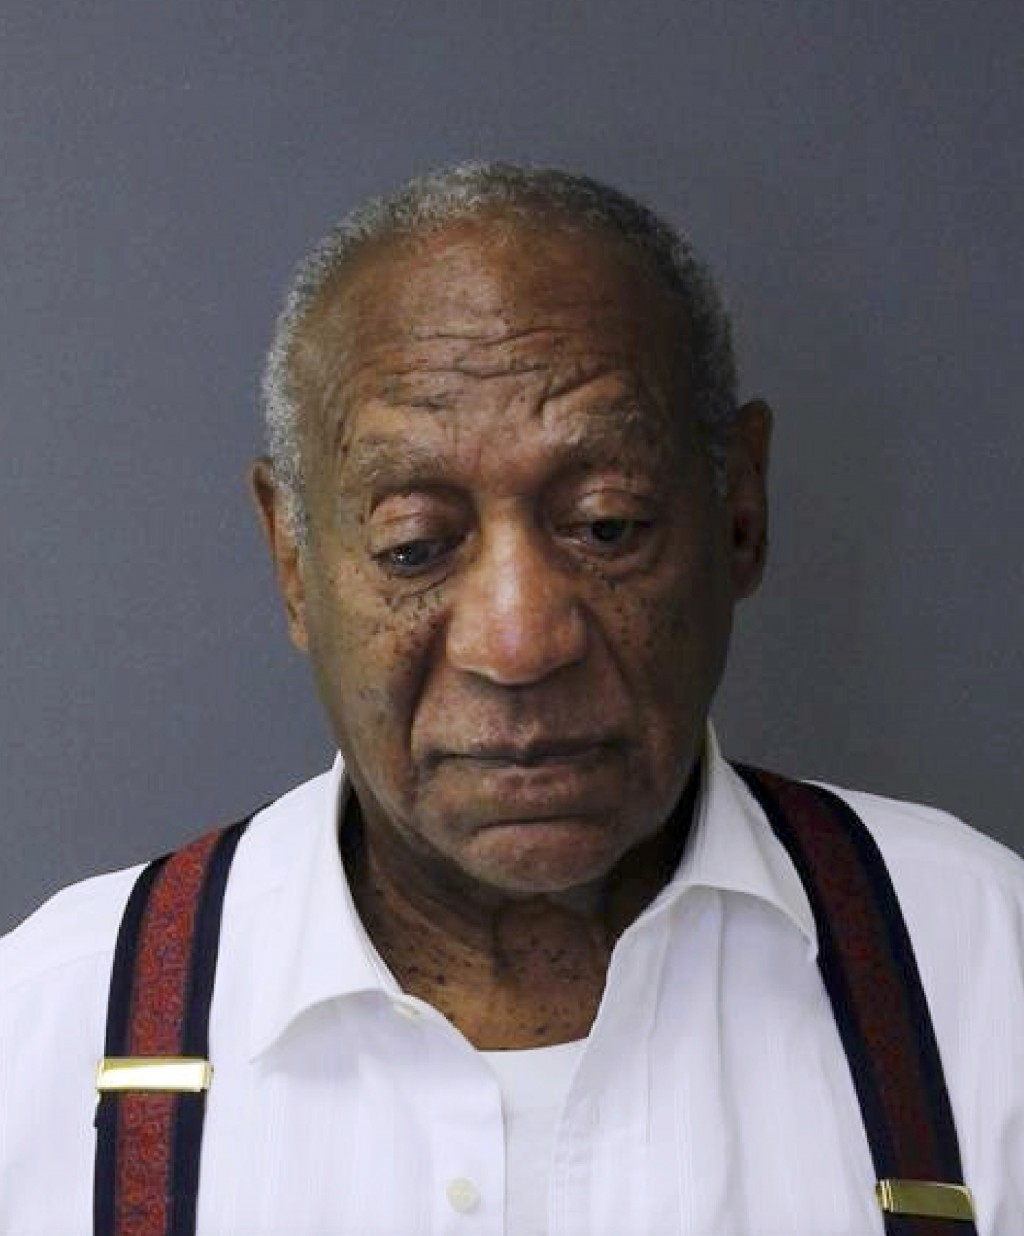 This image provided by the Montgomery County Correctional Facility shows Bill Cosby on Sept. 25, 2018, after he was sentenced to three to 10 years for